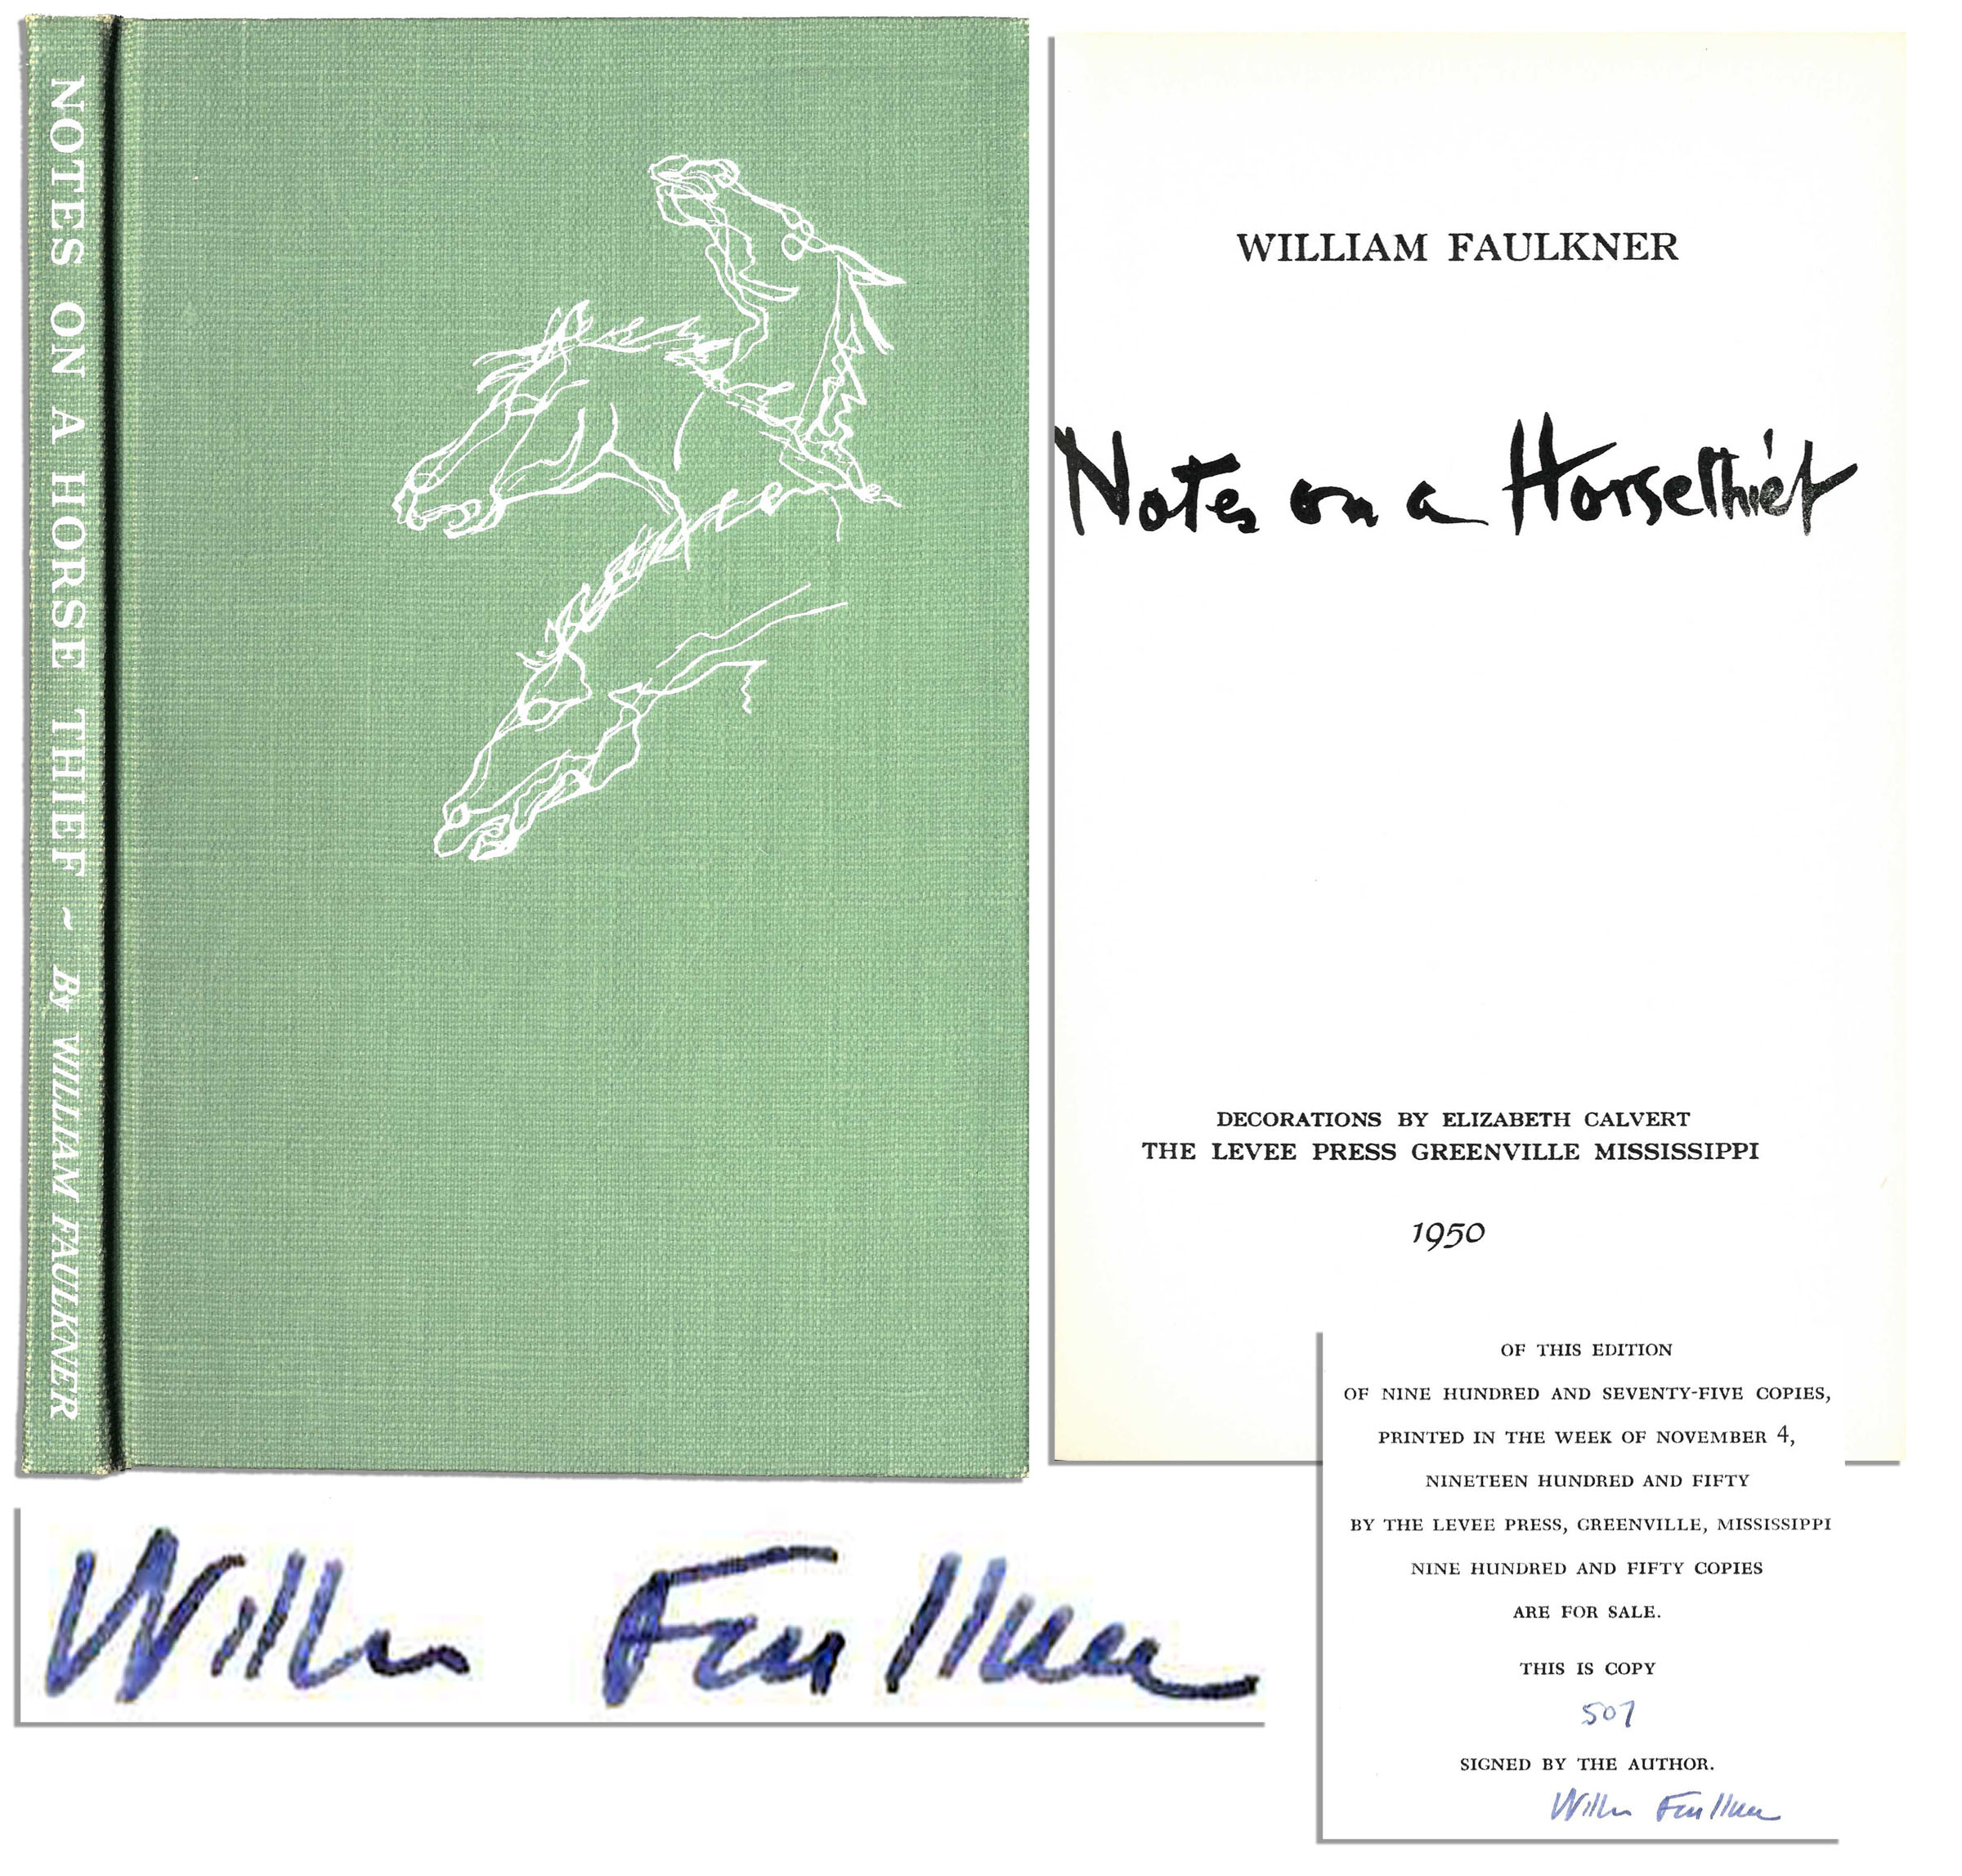 William Faulkner first edition William Faulkner Signed ''Notes on a Horse Thief'' -- Rare First Edition of Only 950 Copies Signed by Faulkner